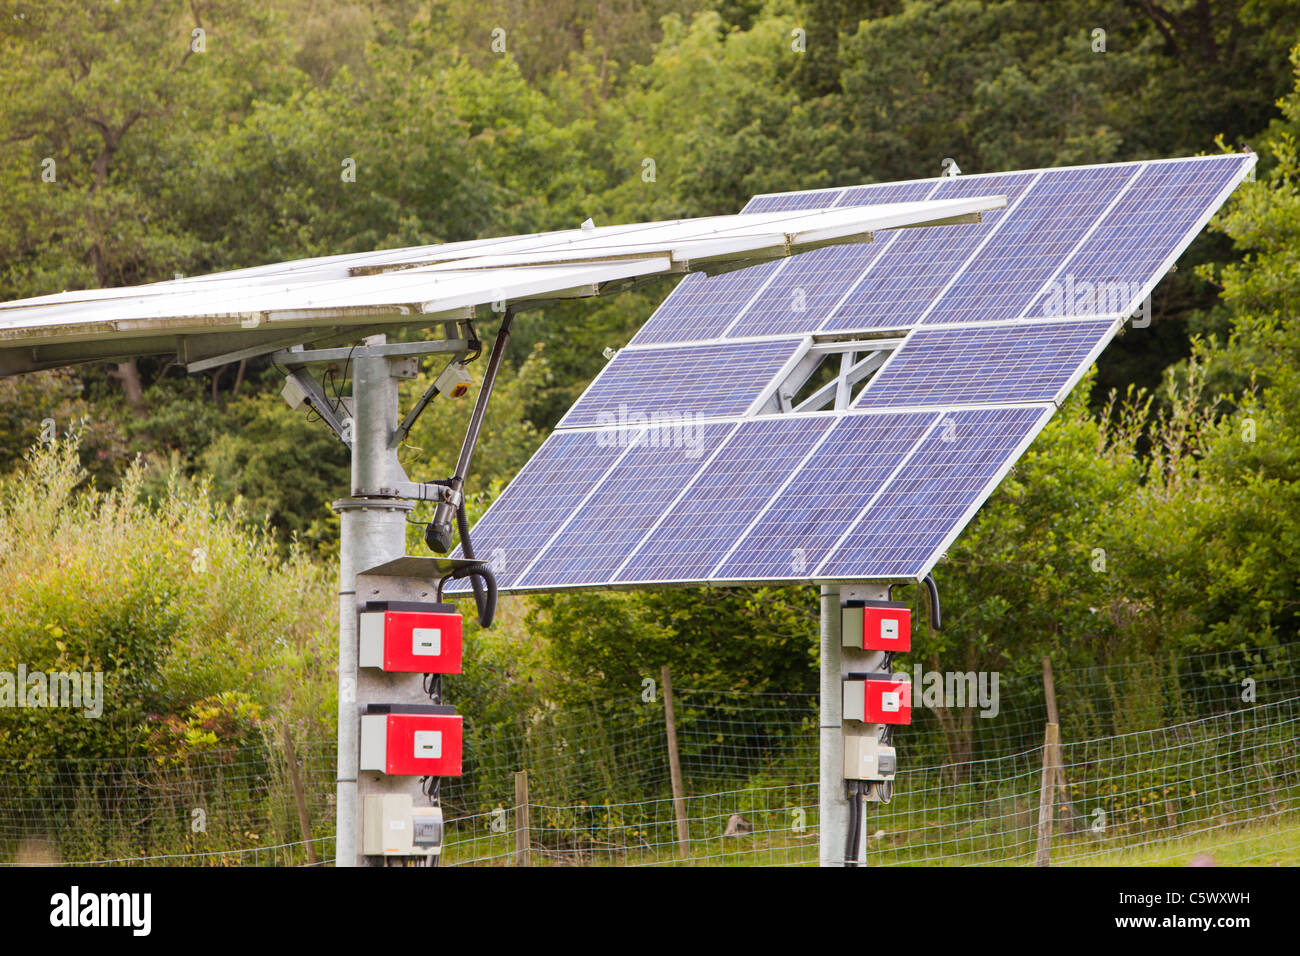 A tracking solar photo voltaic panel system at the off grid ...